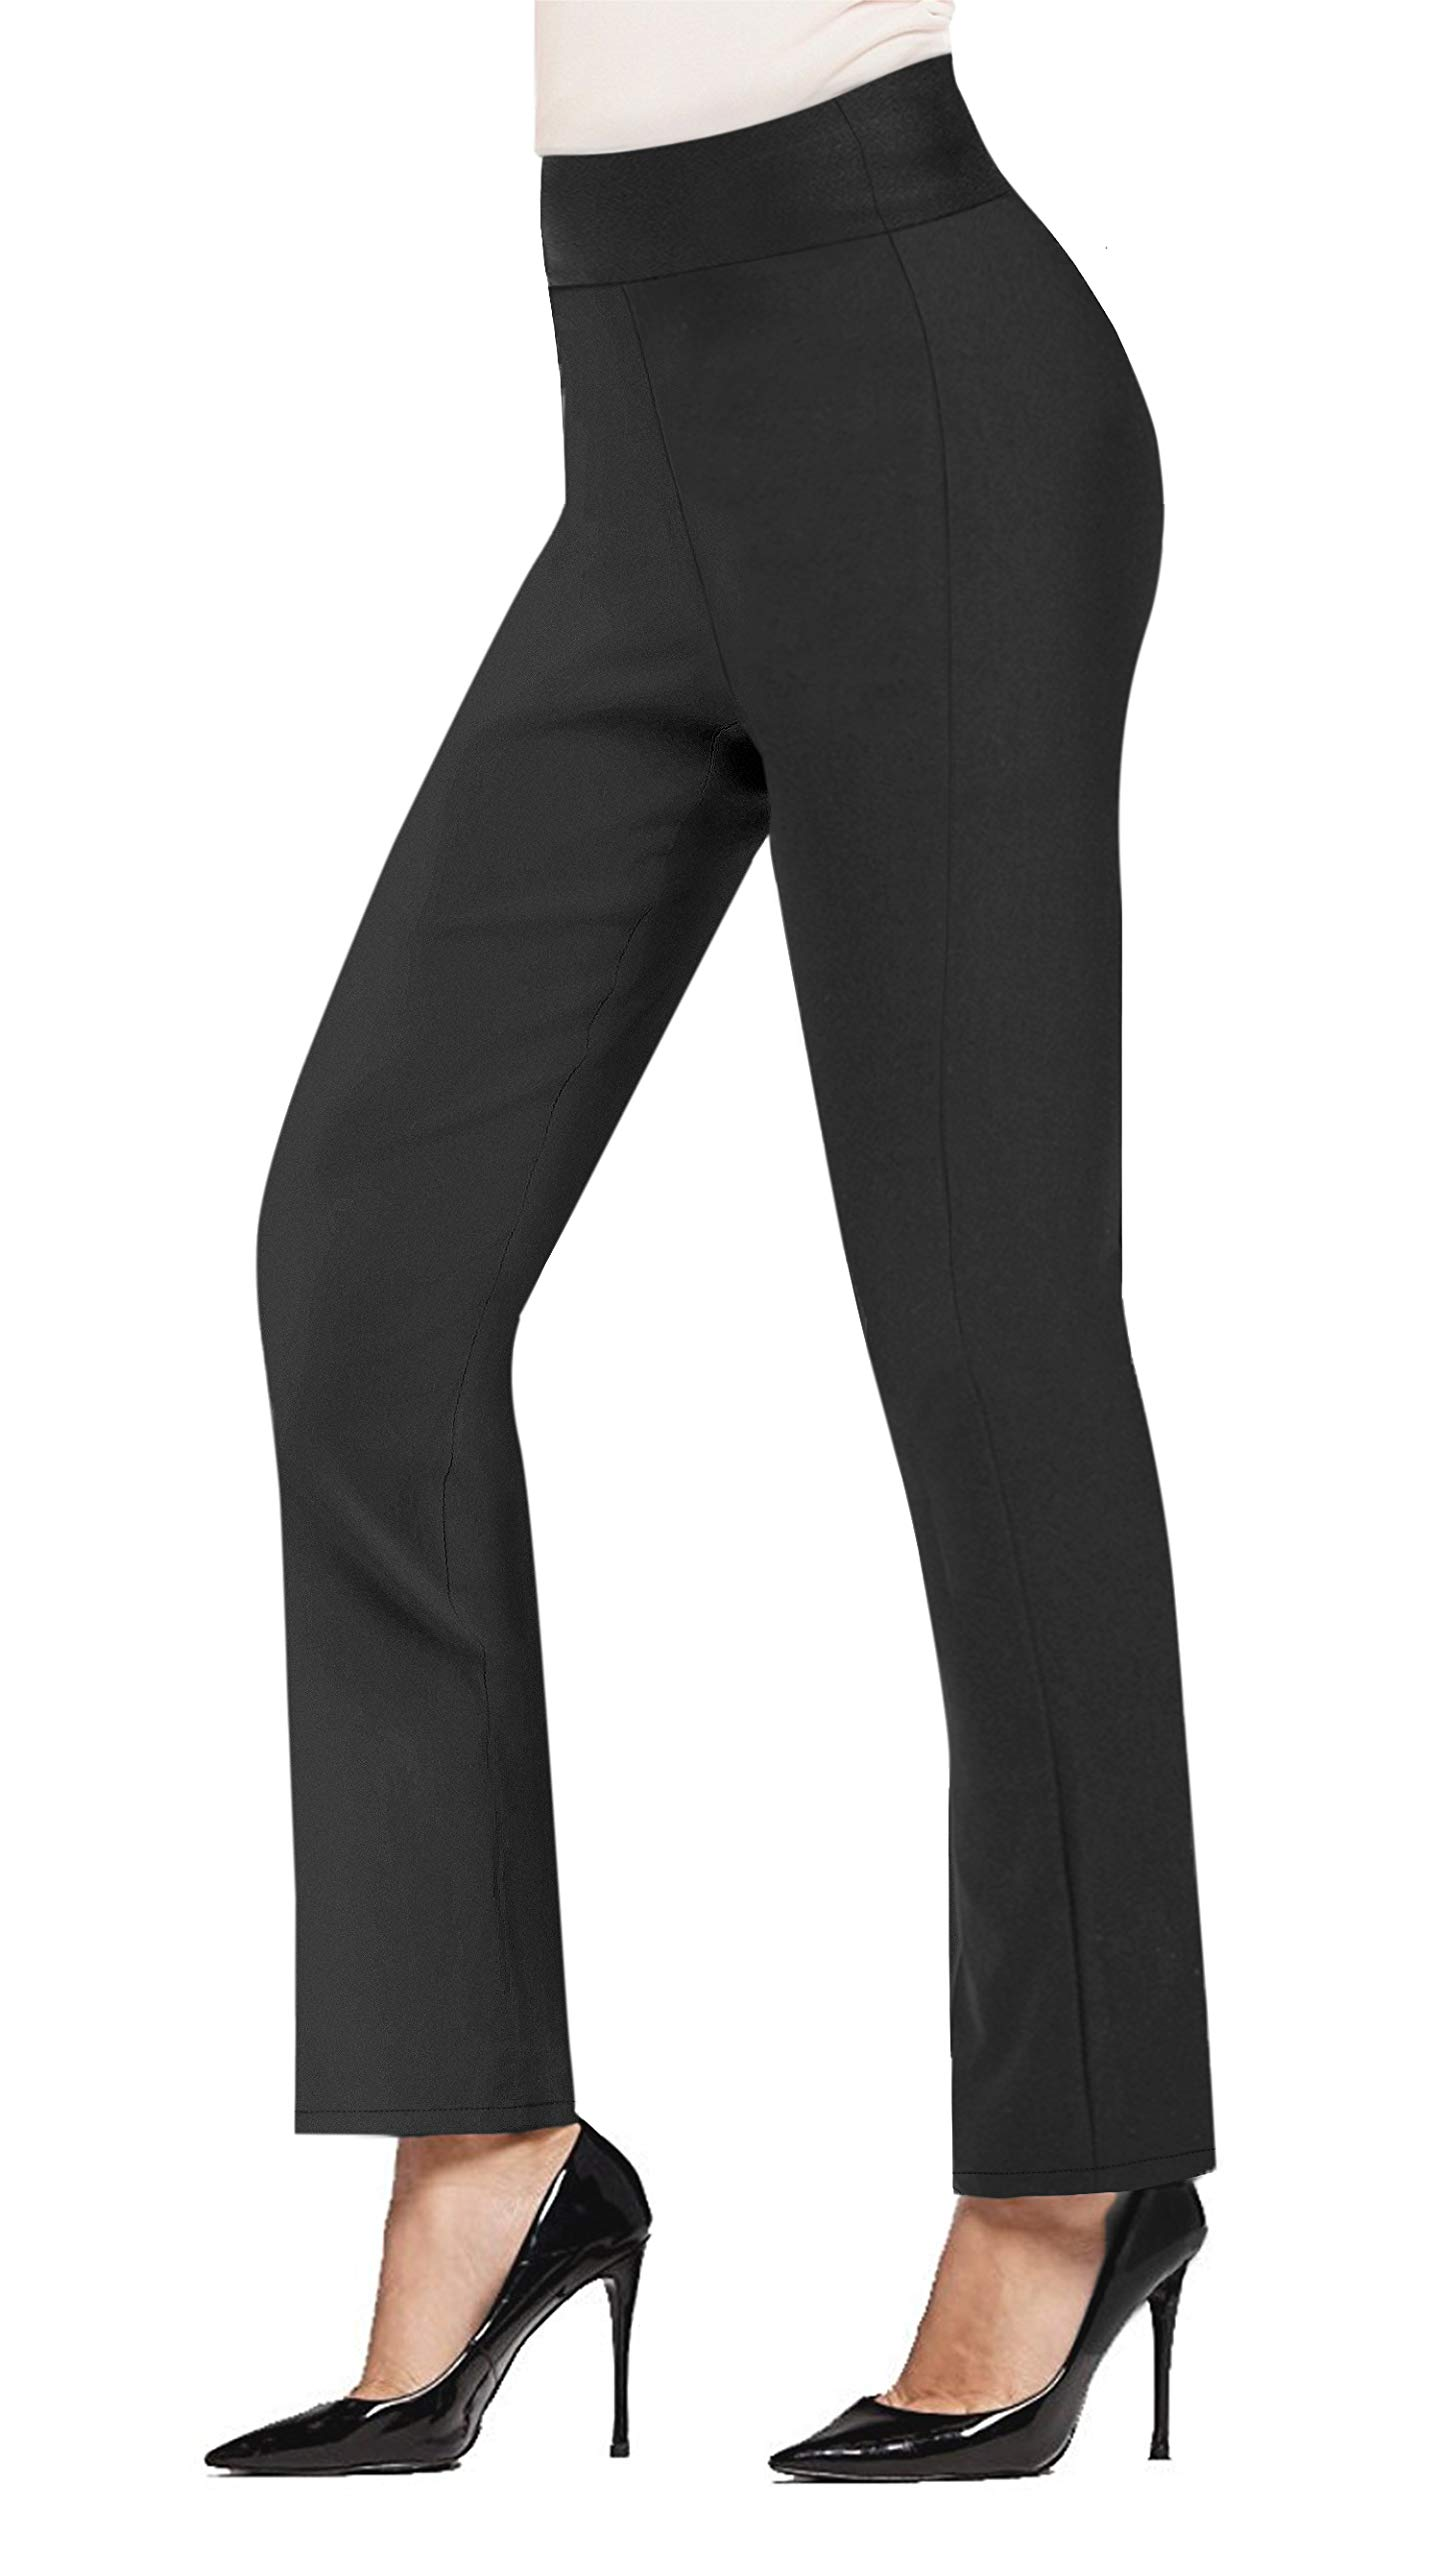 HyBrid & Company Super Comfy Stretch Pullon Bootcut Millennium Pants P44972BL Charcoal XL by HyBrid & Company